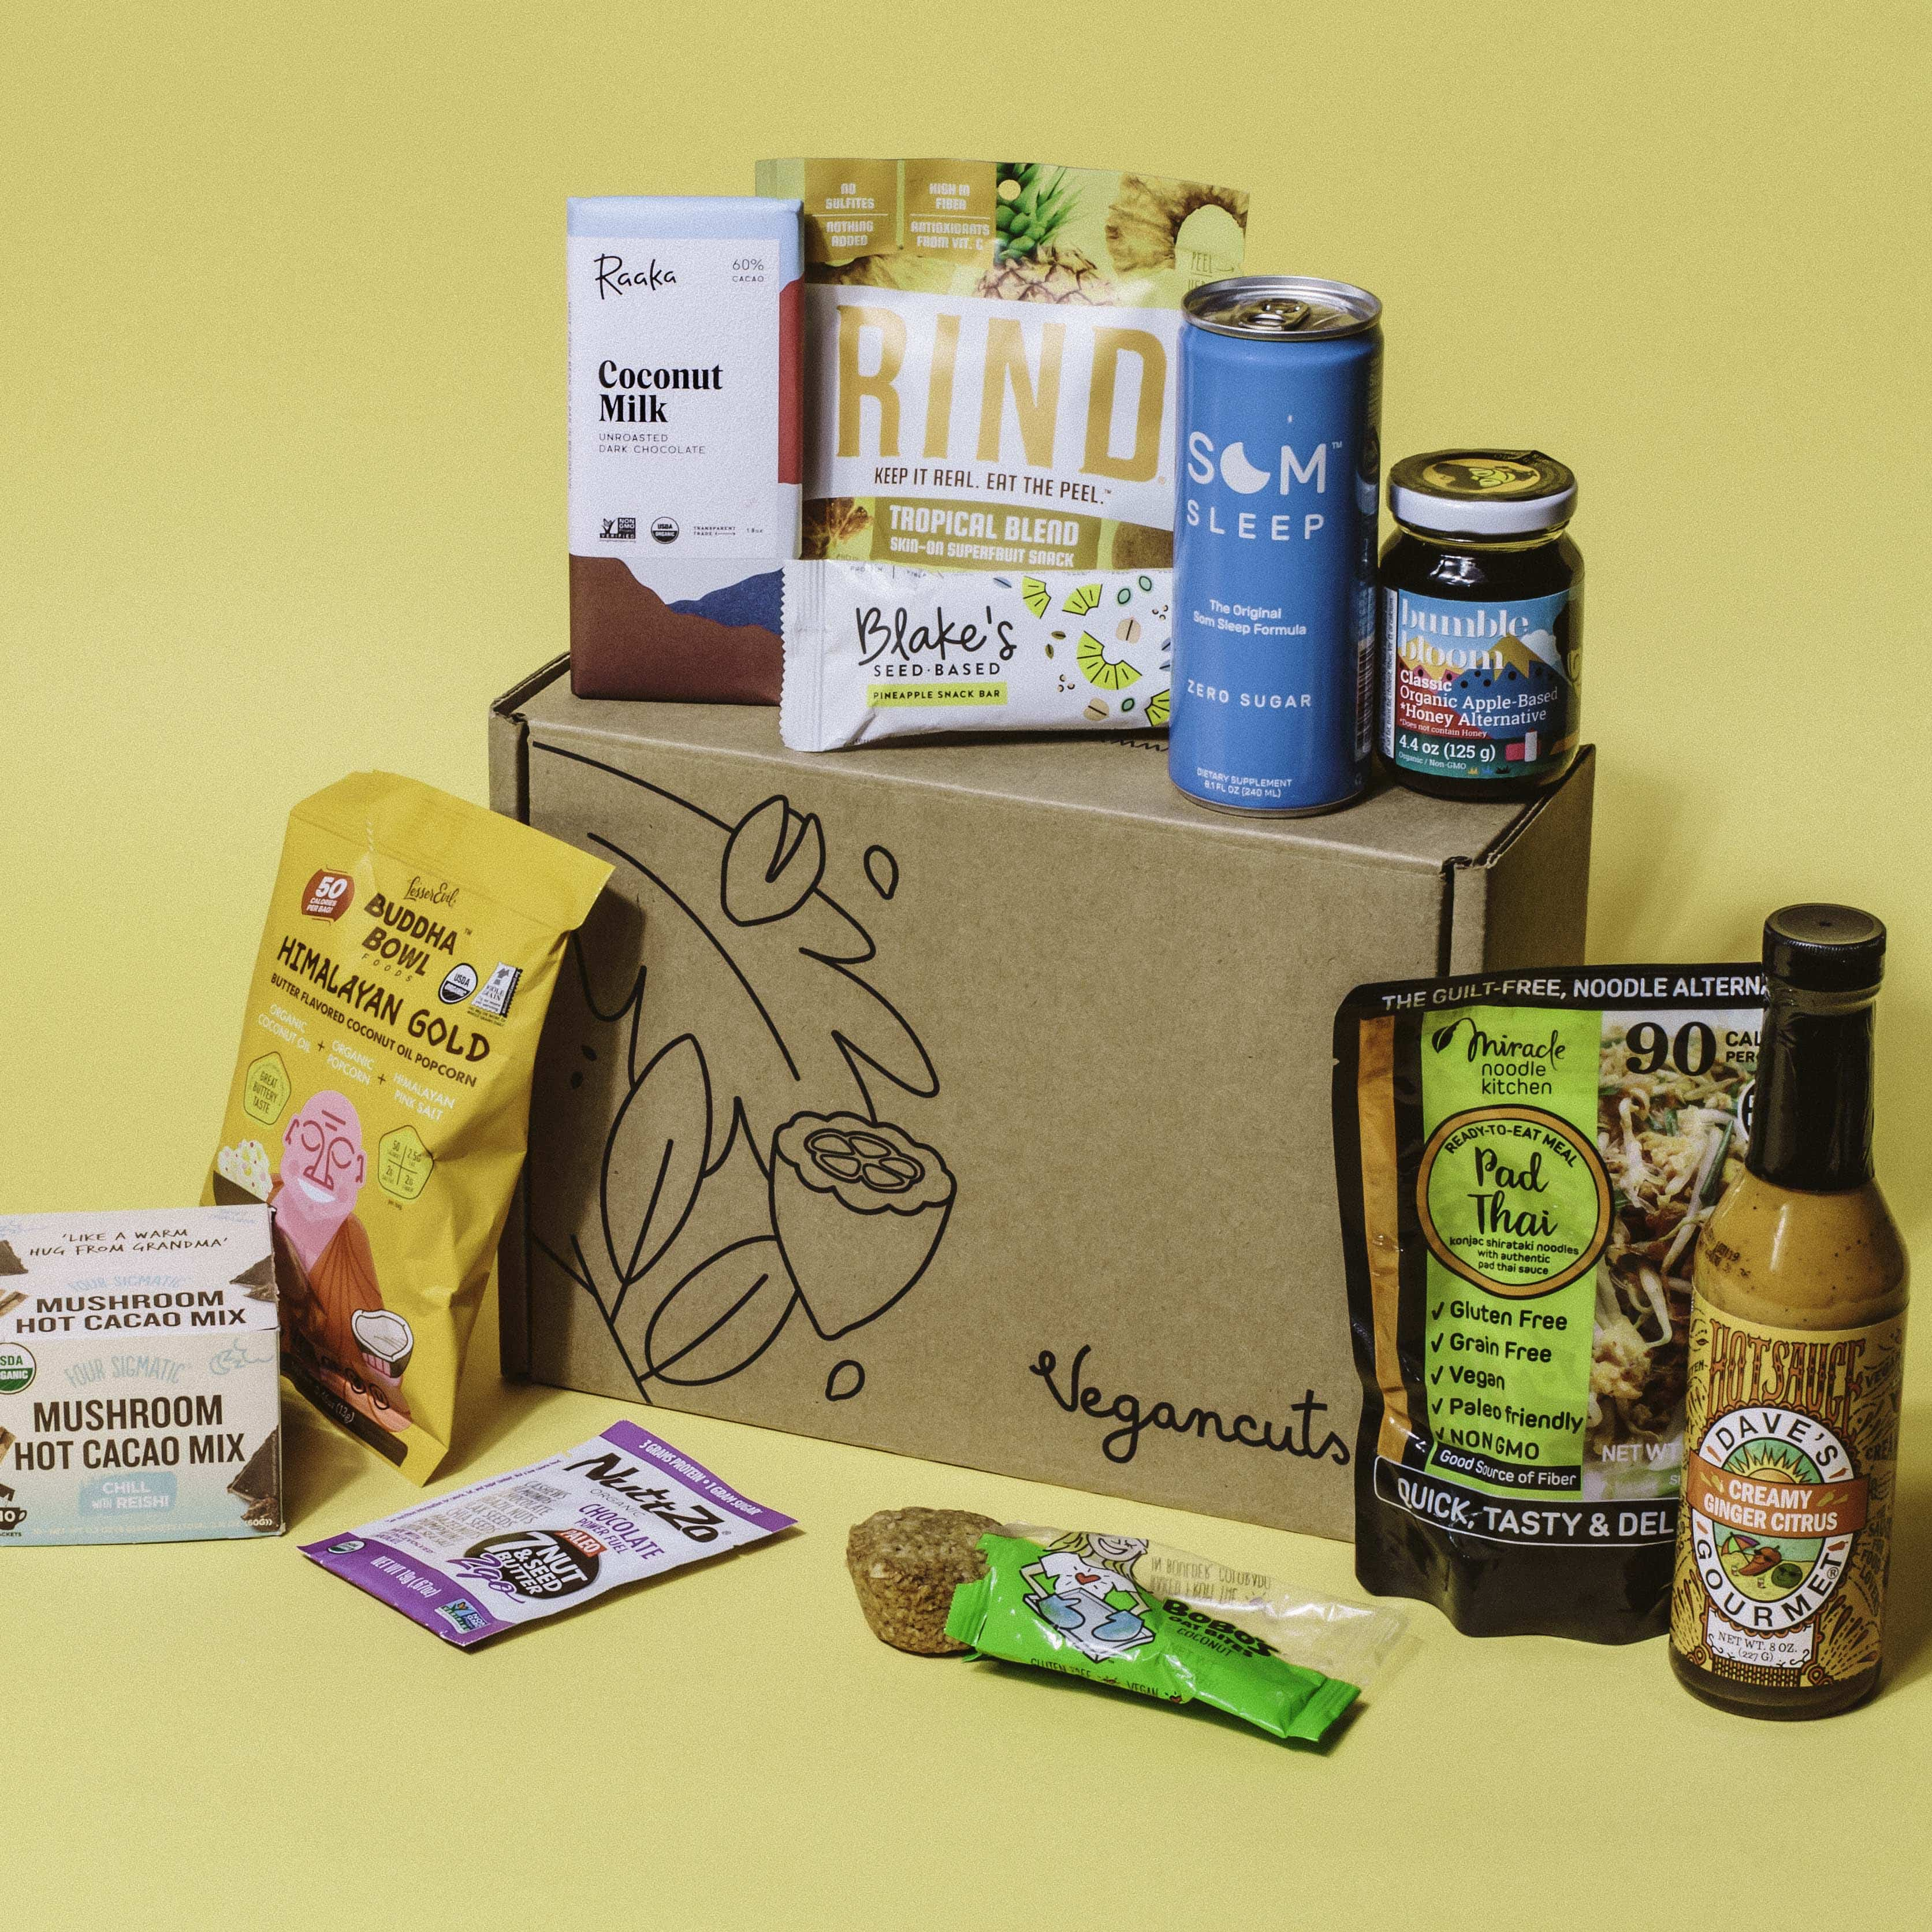 Vegancuts October 2019 Snack Box Spoilers!